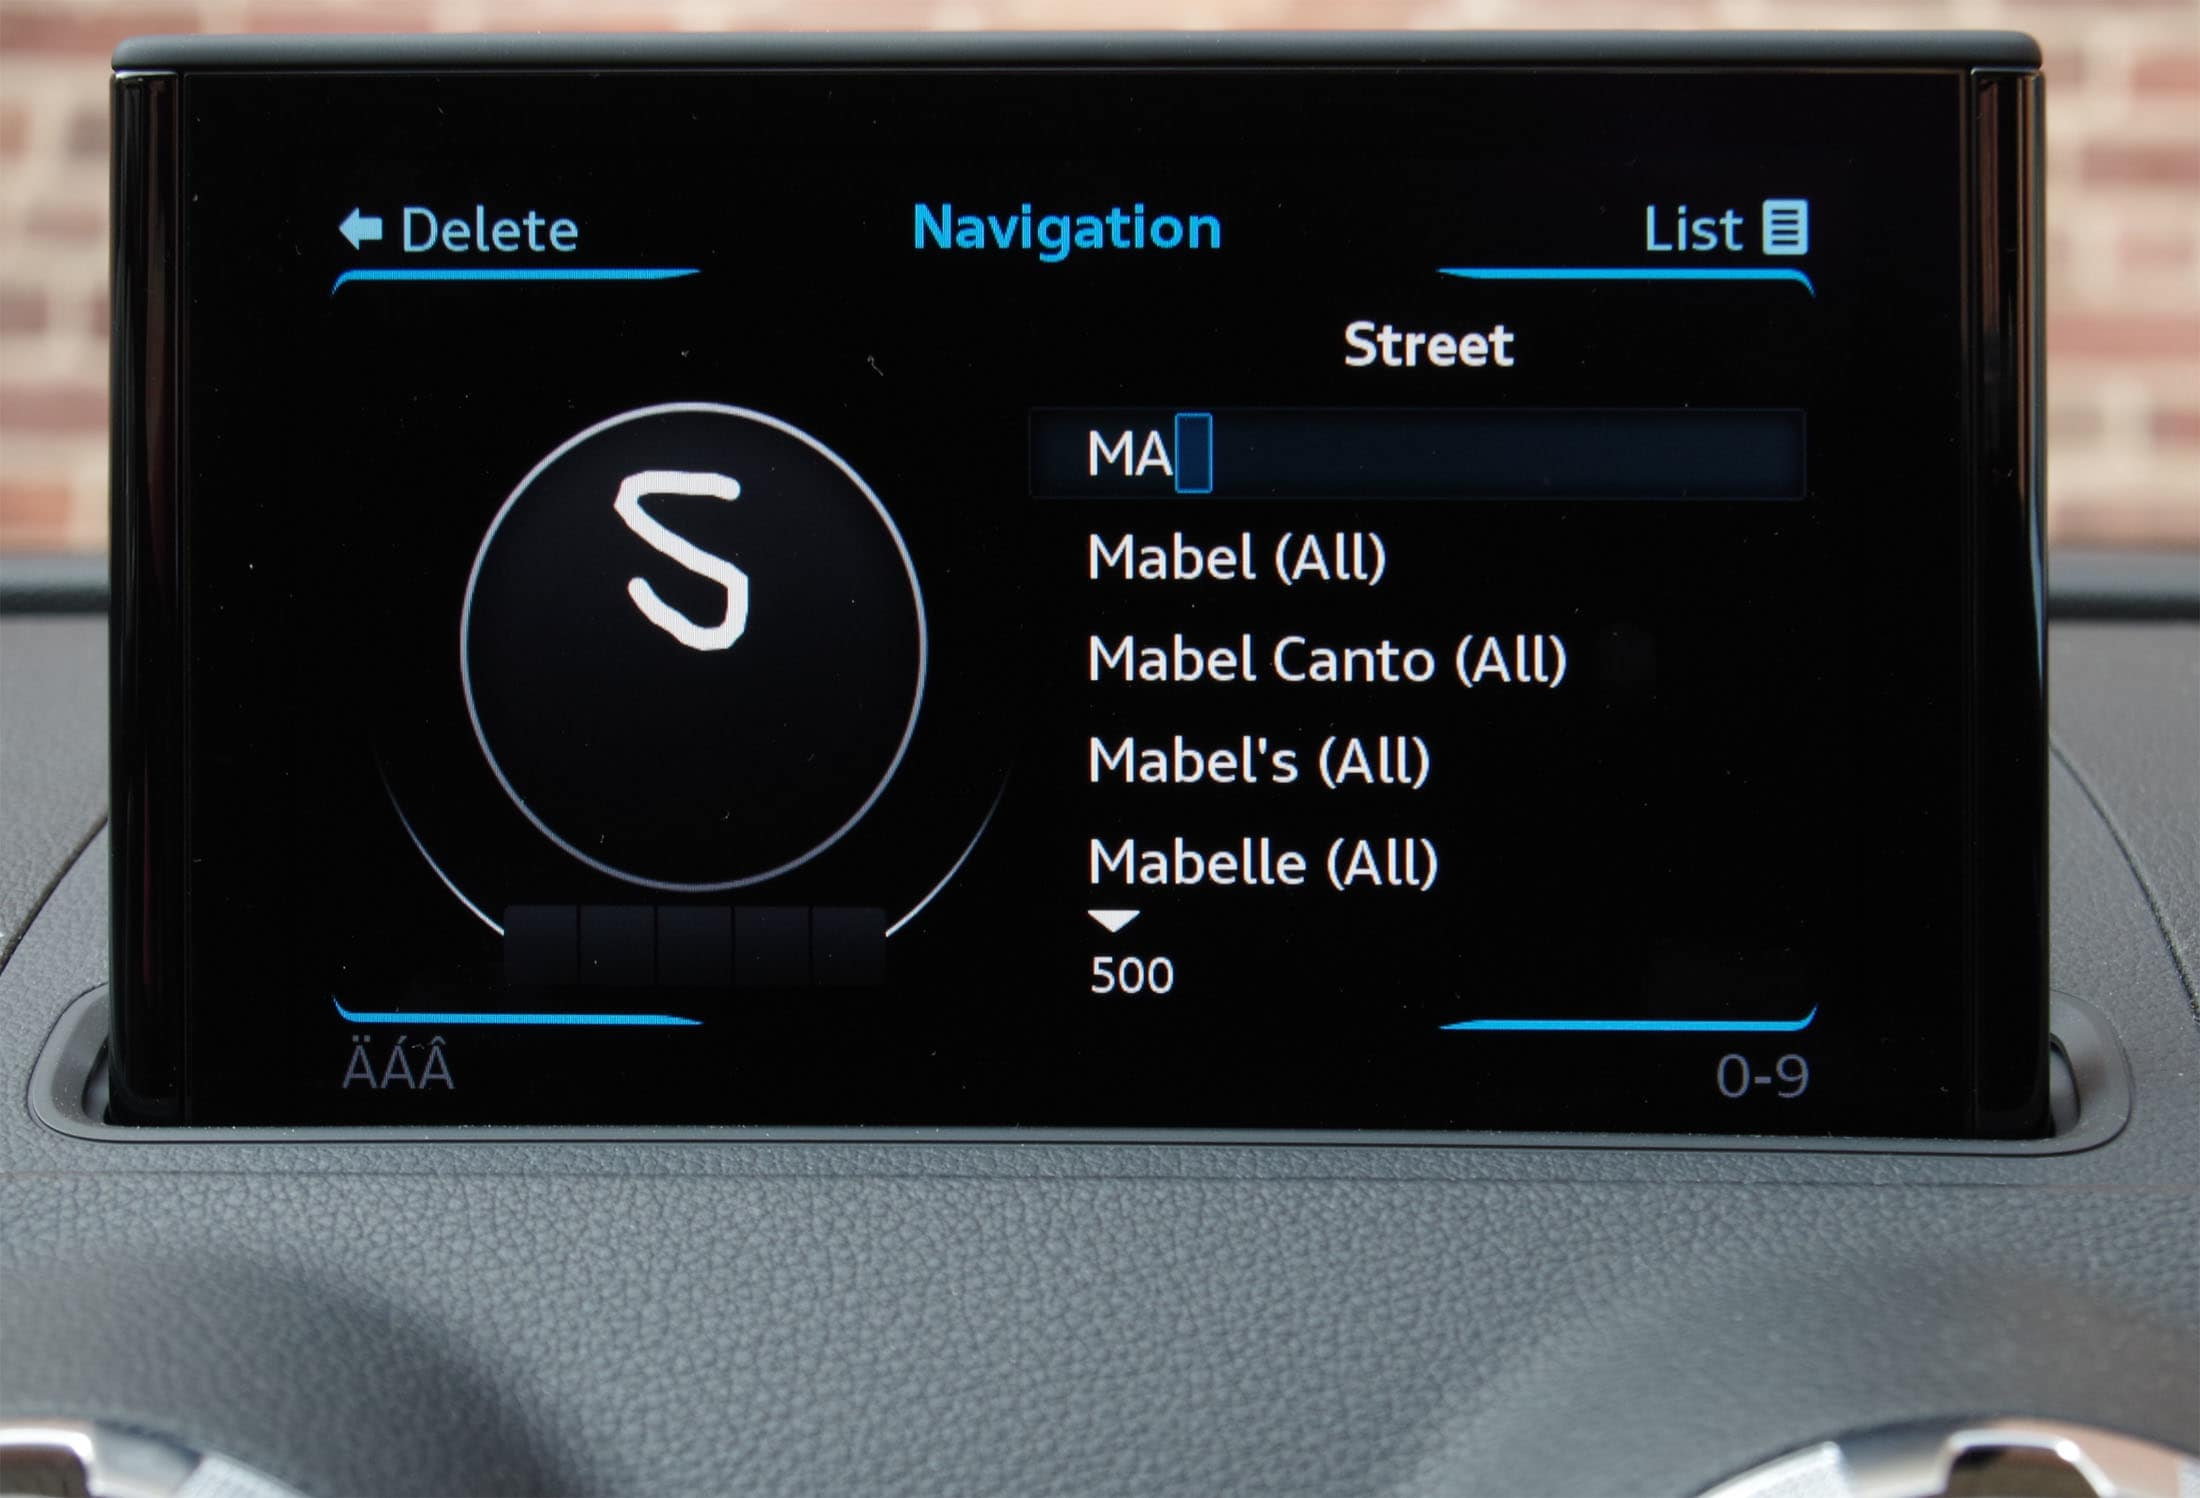 Audi handwriting recognition